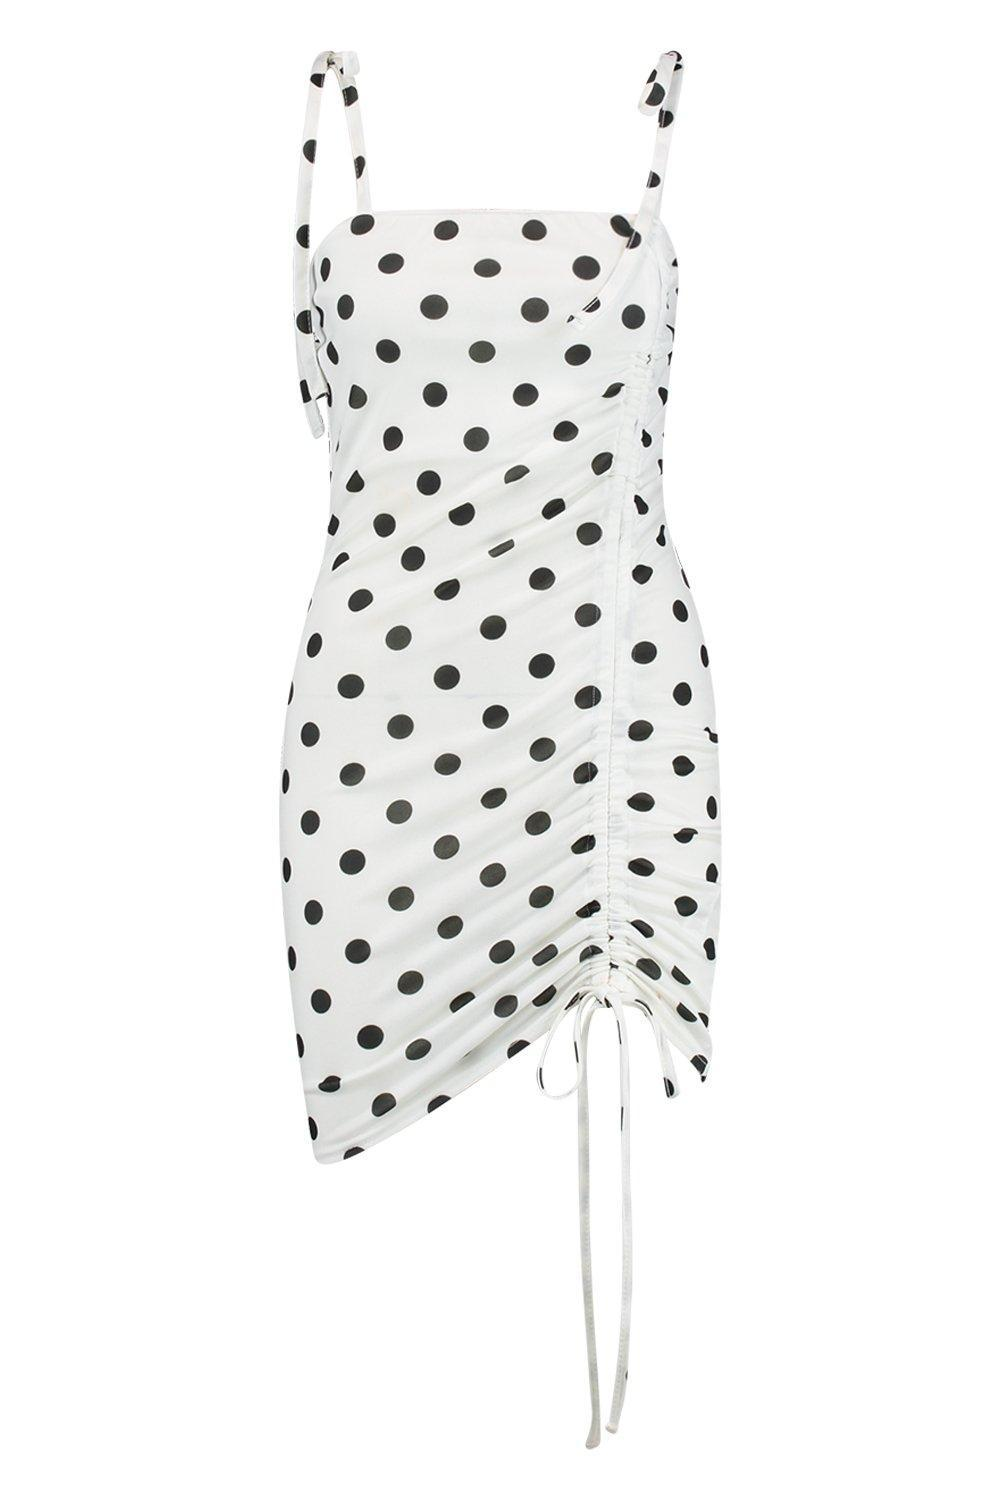 Dot in Boohoo Bodycon Dress Tie Polka White Ruched Strap Lyst 4qc5RS3LAj